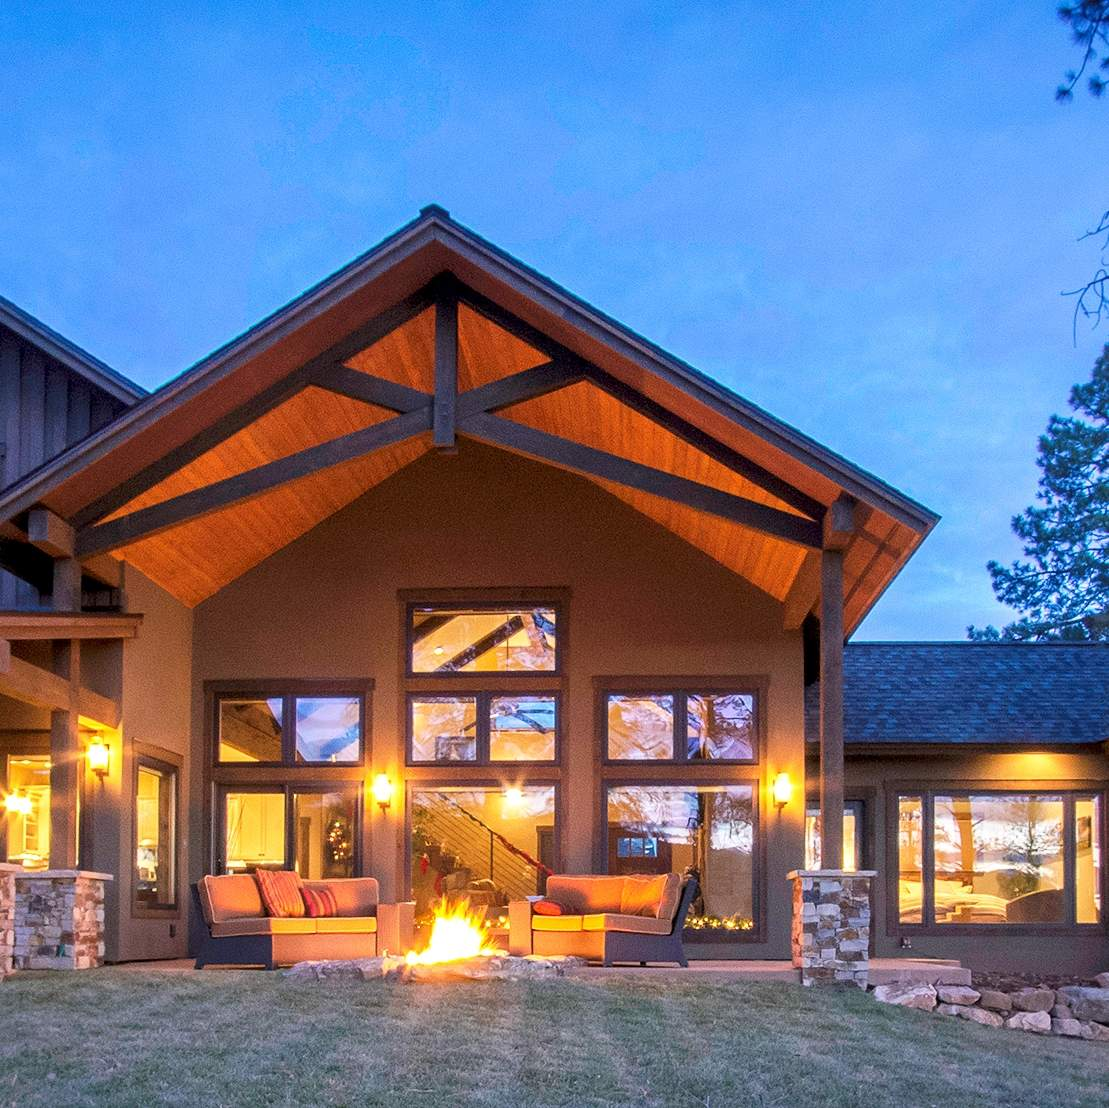 Energy Weather And The Outdoors Driving Custom Home Designs In Durango